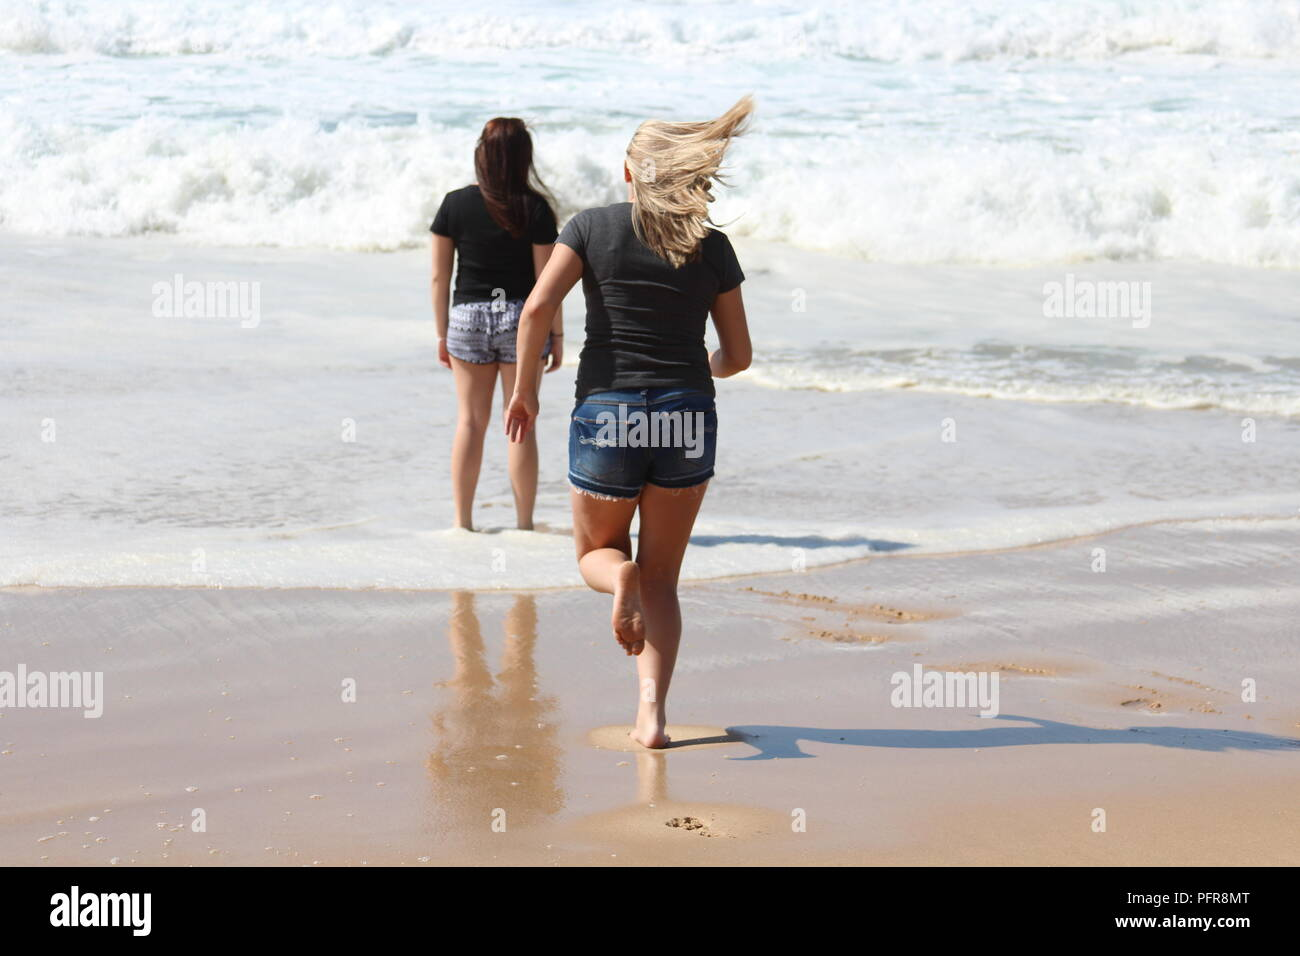 Hot summer day in Dana bay, as we say goodbye to the ocean for now, enjoying every last bit of sand sea and silliness. - Stock Image